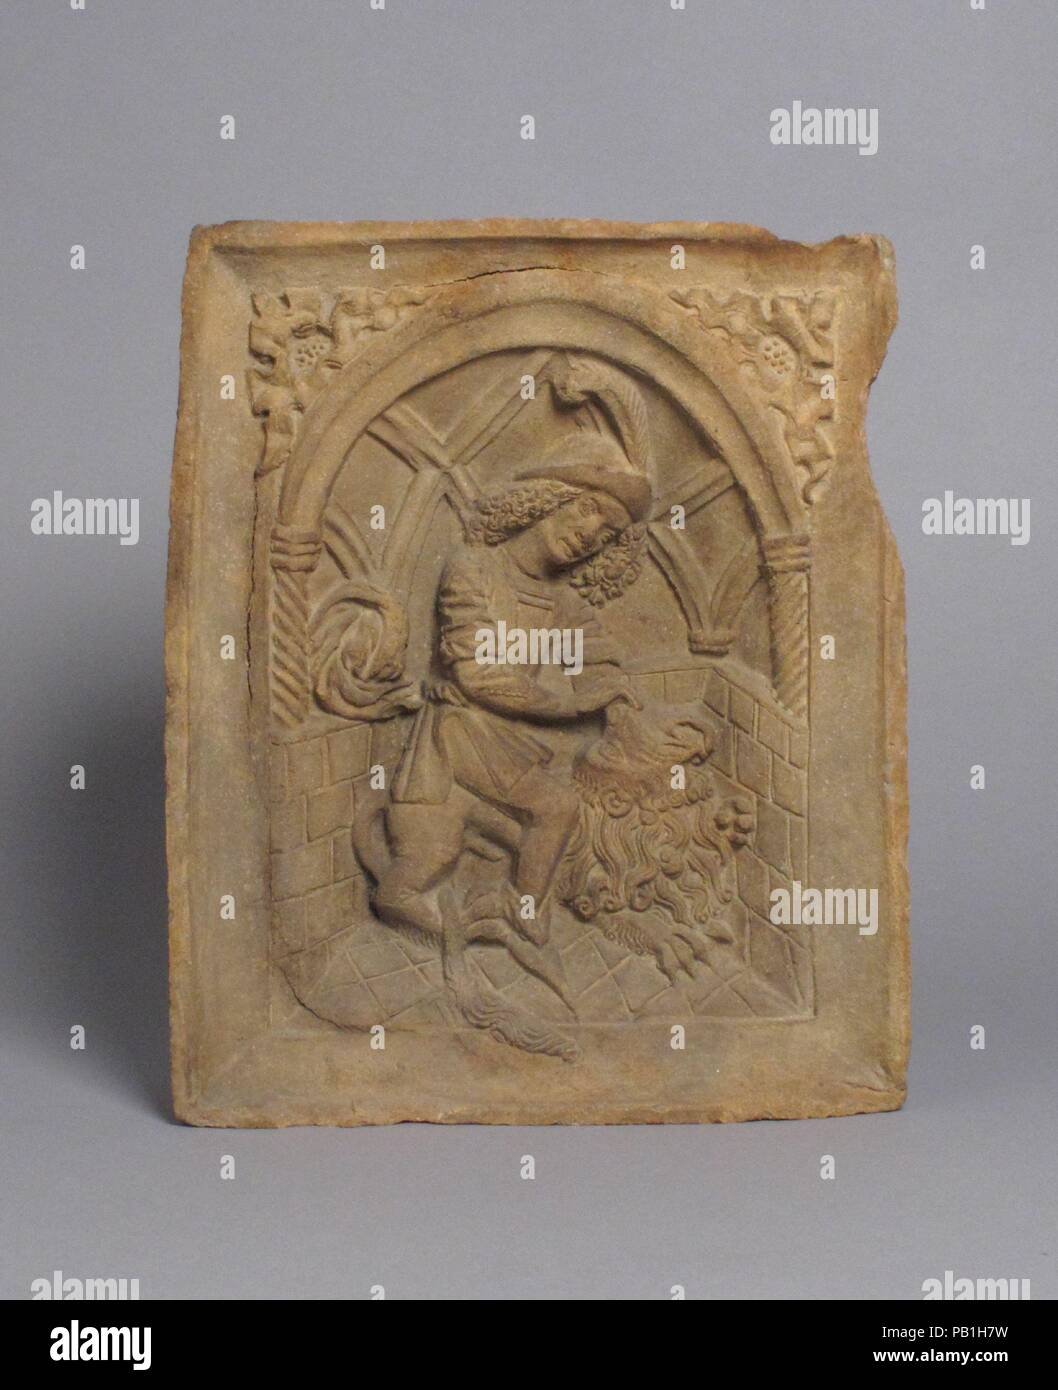 Oven Tile with Samson and the Lion (Based on an Engraving by Master E.S.). Culture: Austrian. Dimensions: Overall: 9 7/8 x 8 1/8 x 2 11/16in. (25.1 x 20.6 x 6.8cm). Date: ca. 1490. Museum: Metropolitan Museum of Art, New York, USA. - Stock Image